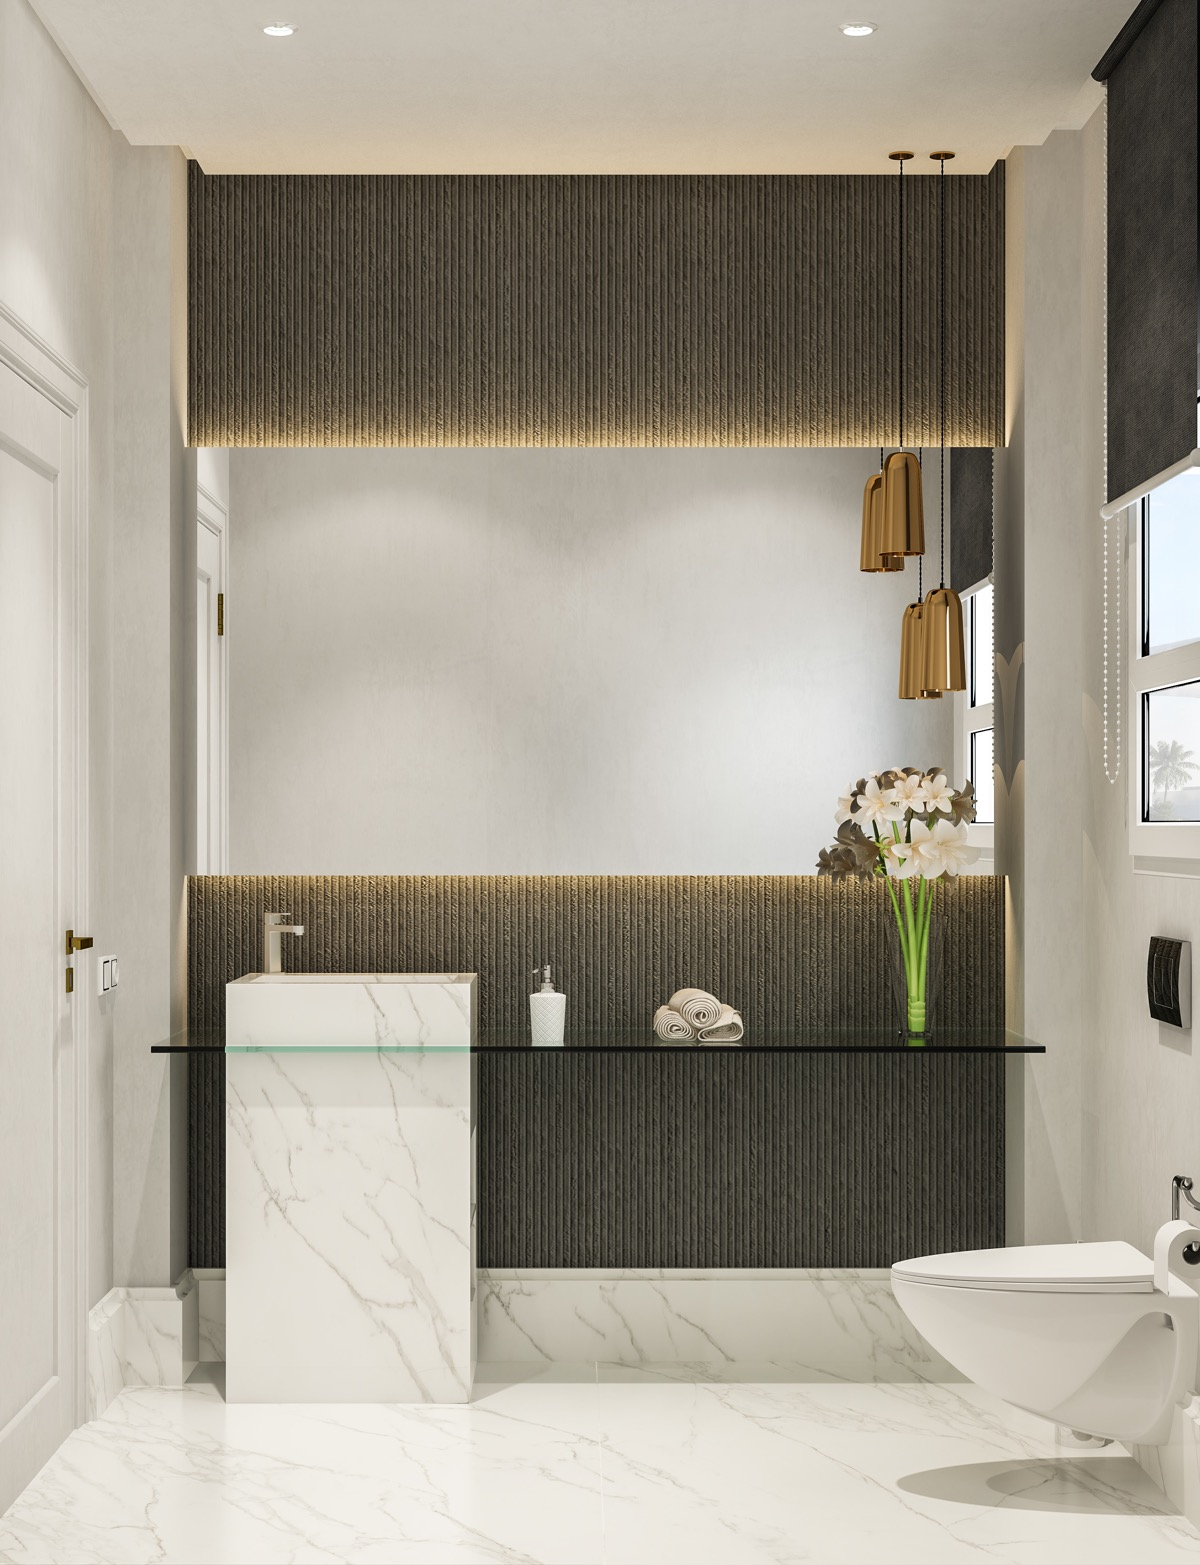 Attirant 8 |; Visualizer: Ahmed Morsy. Elegance Abounds In This Small Grey And White  Bathroom.